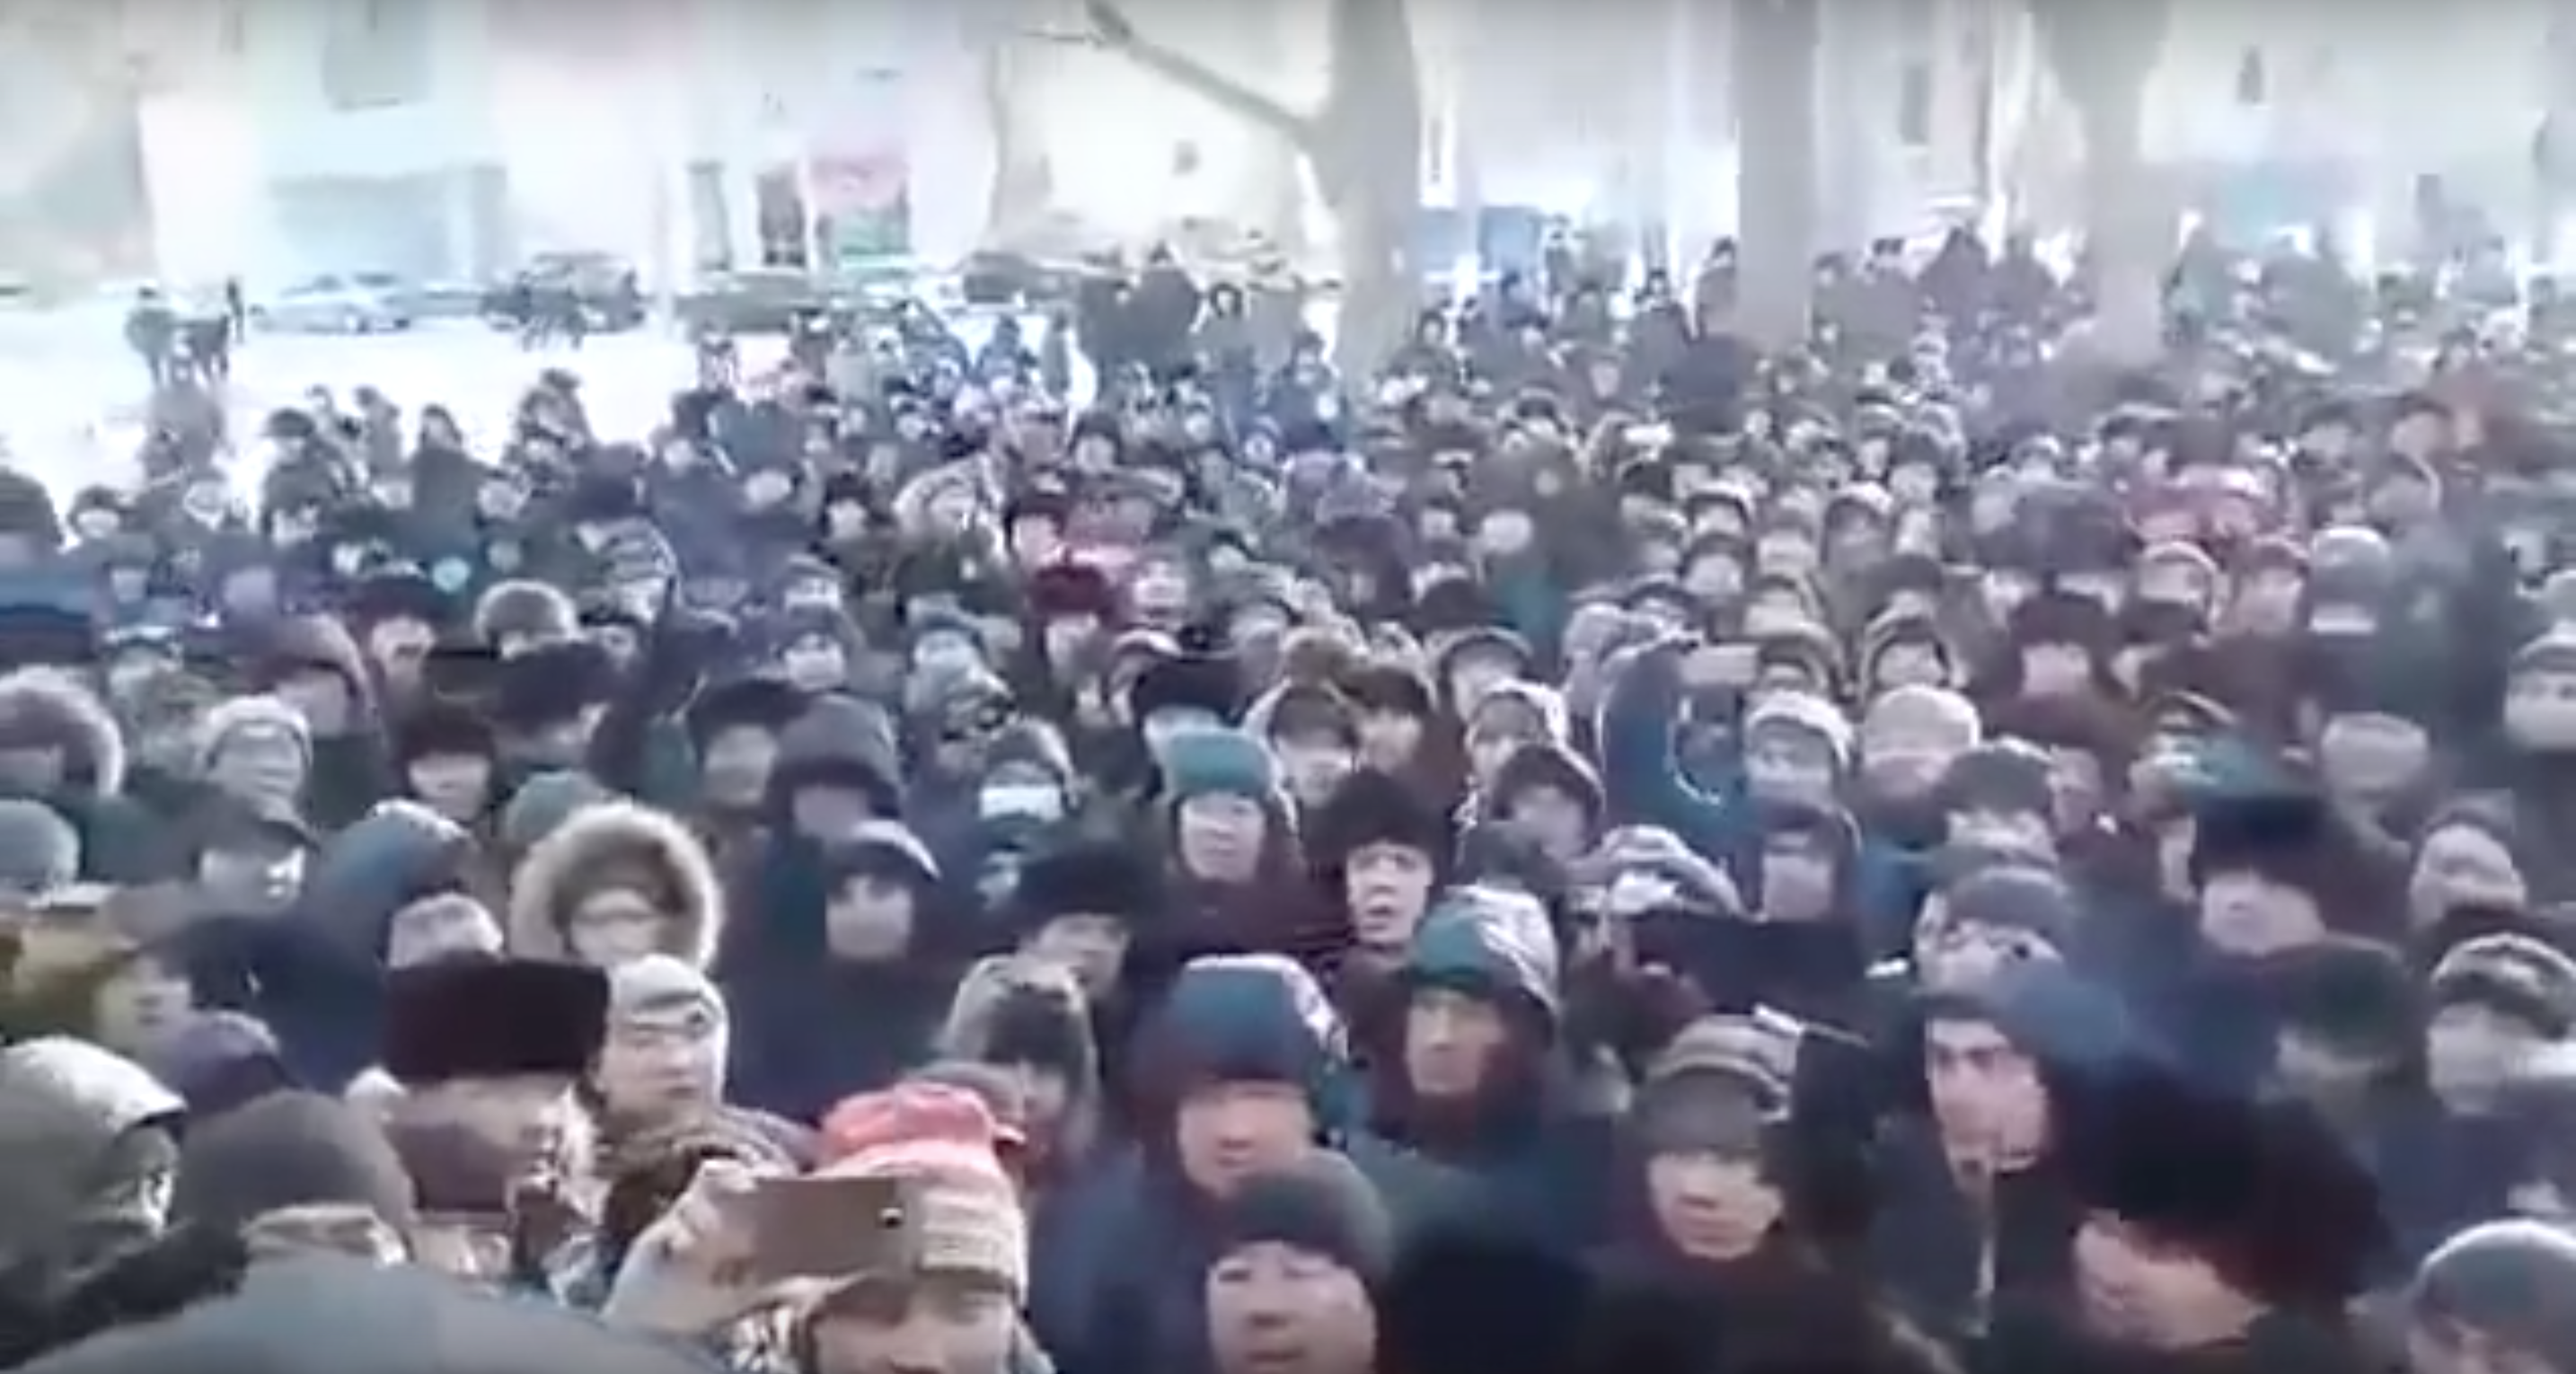 Amateur footage showing a crowd of demonstrators outside a police station in Karaganda. (Photo: Screengrab from ProjectKazakhEli YouTube account)